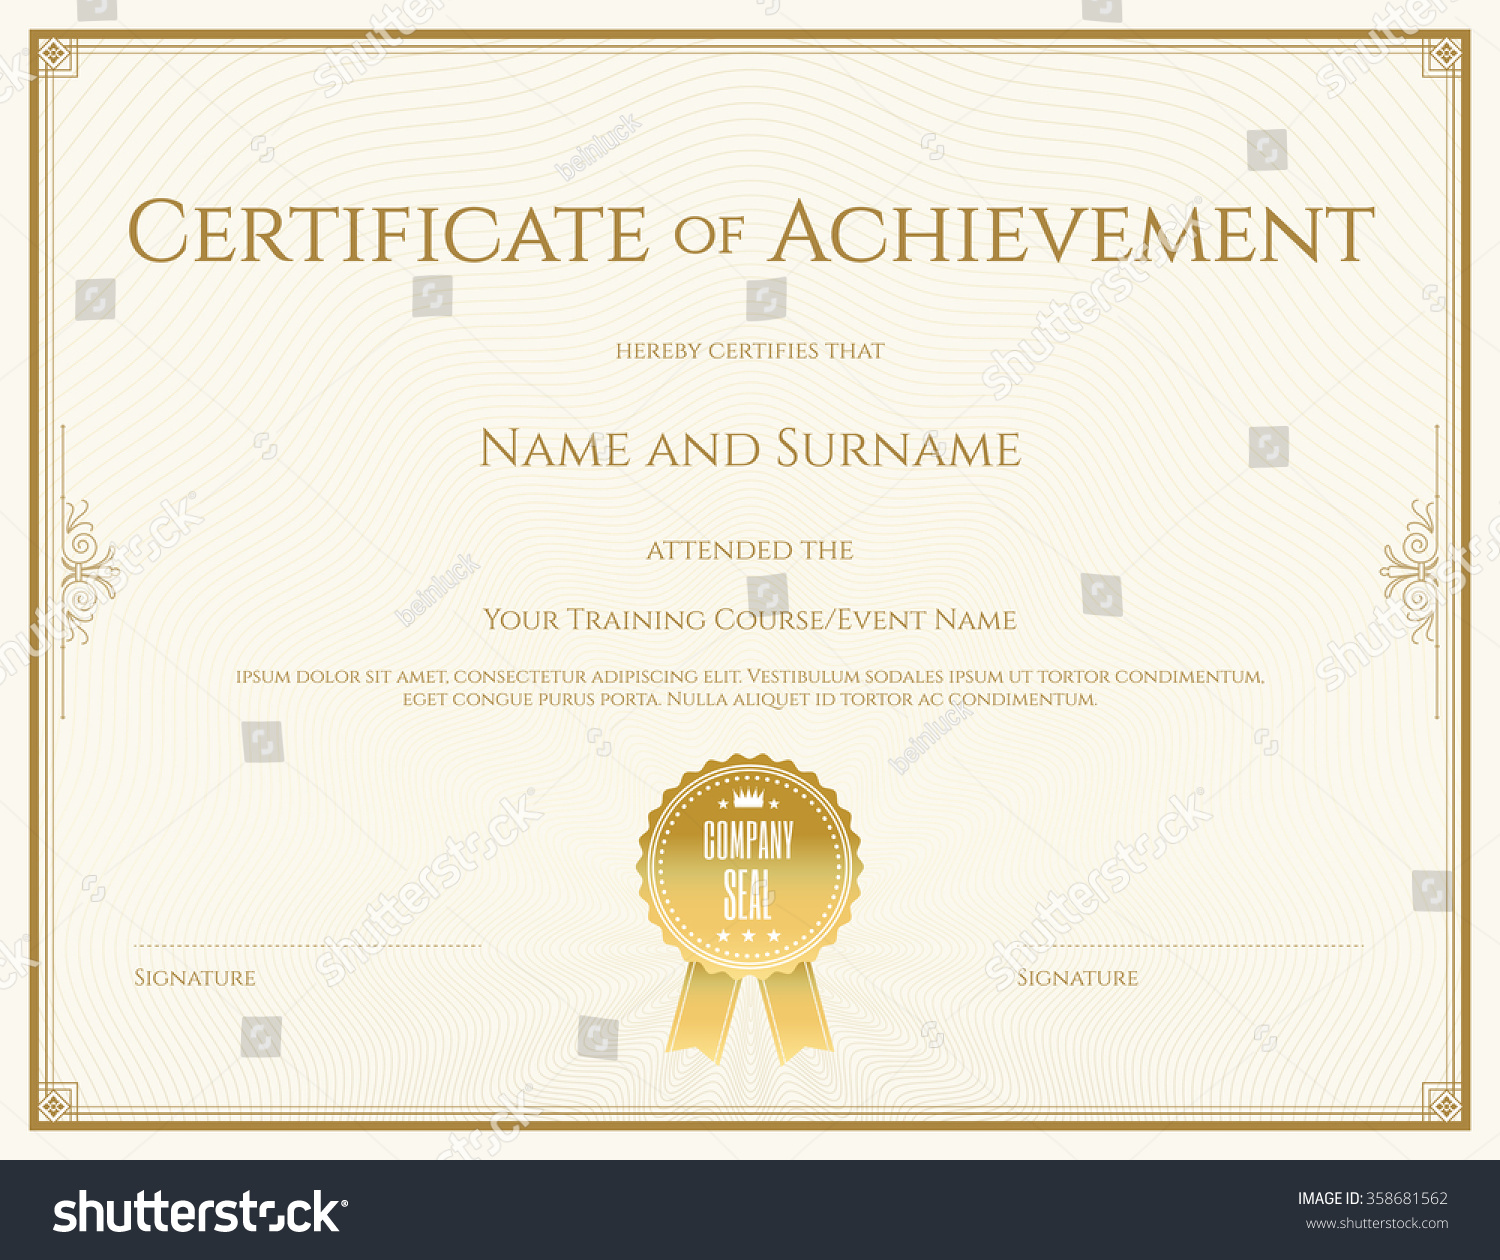 Certificate template vector achievement graduation completion certificate template in vector for achievement graduation completion yadclub